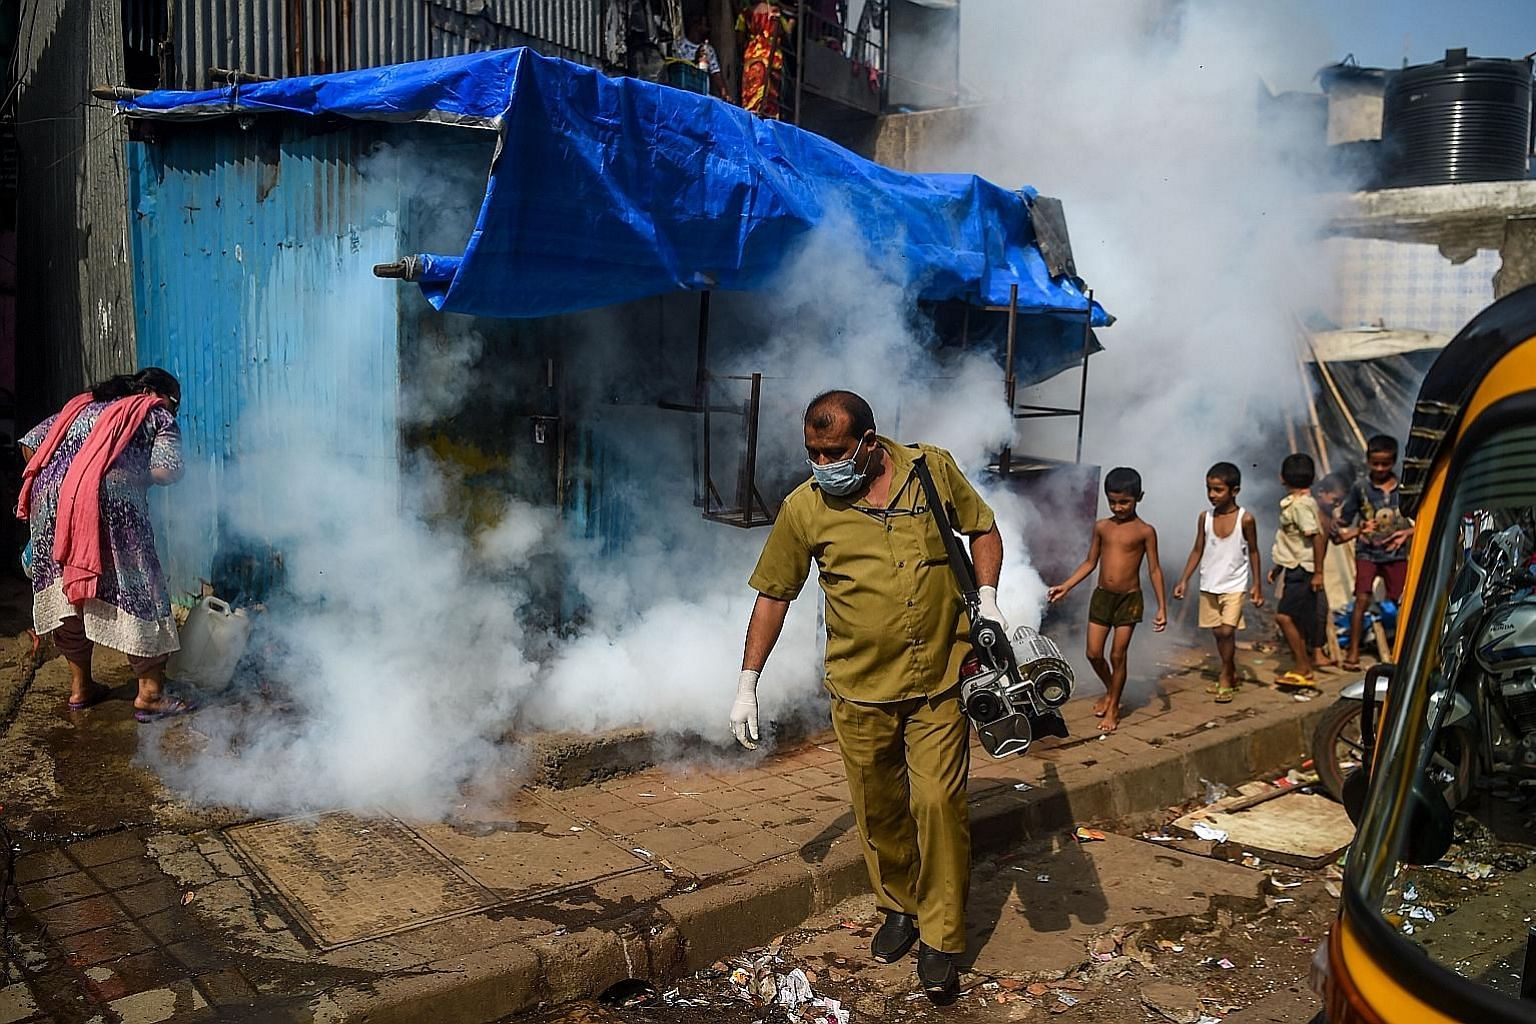 A patient using a balloon to strengthen her lungs as she recovered from Covid-19 at a makeshift hospital in Mexico City in June. A slum area being fumigated as a preventive measure against malaria and dengue in Mumbai, India. Lockdowns and supply-cha